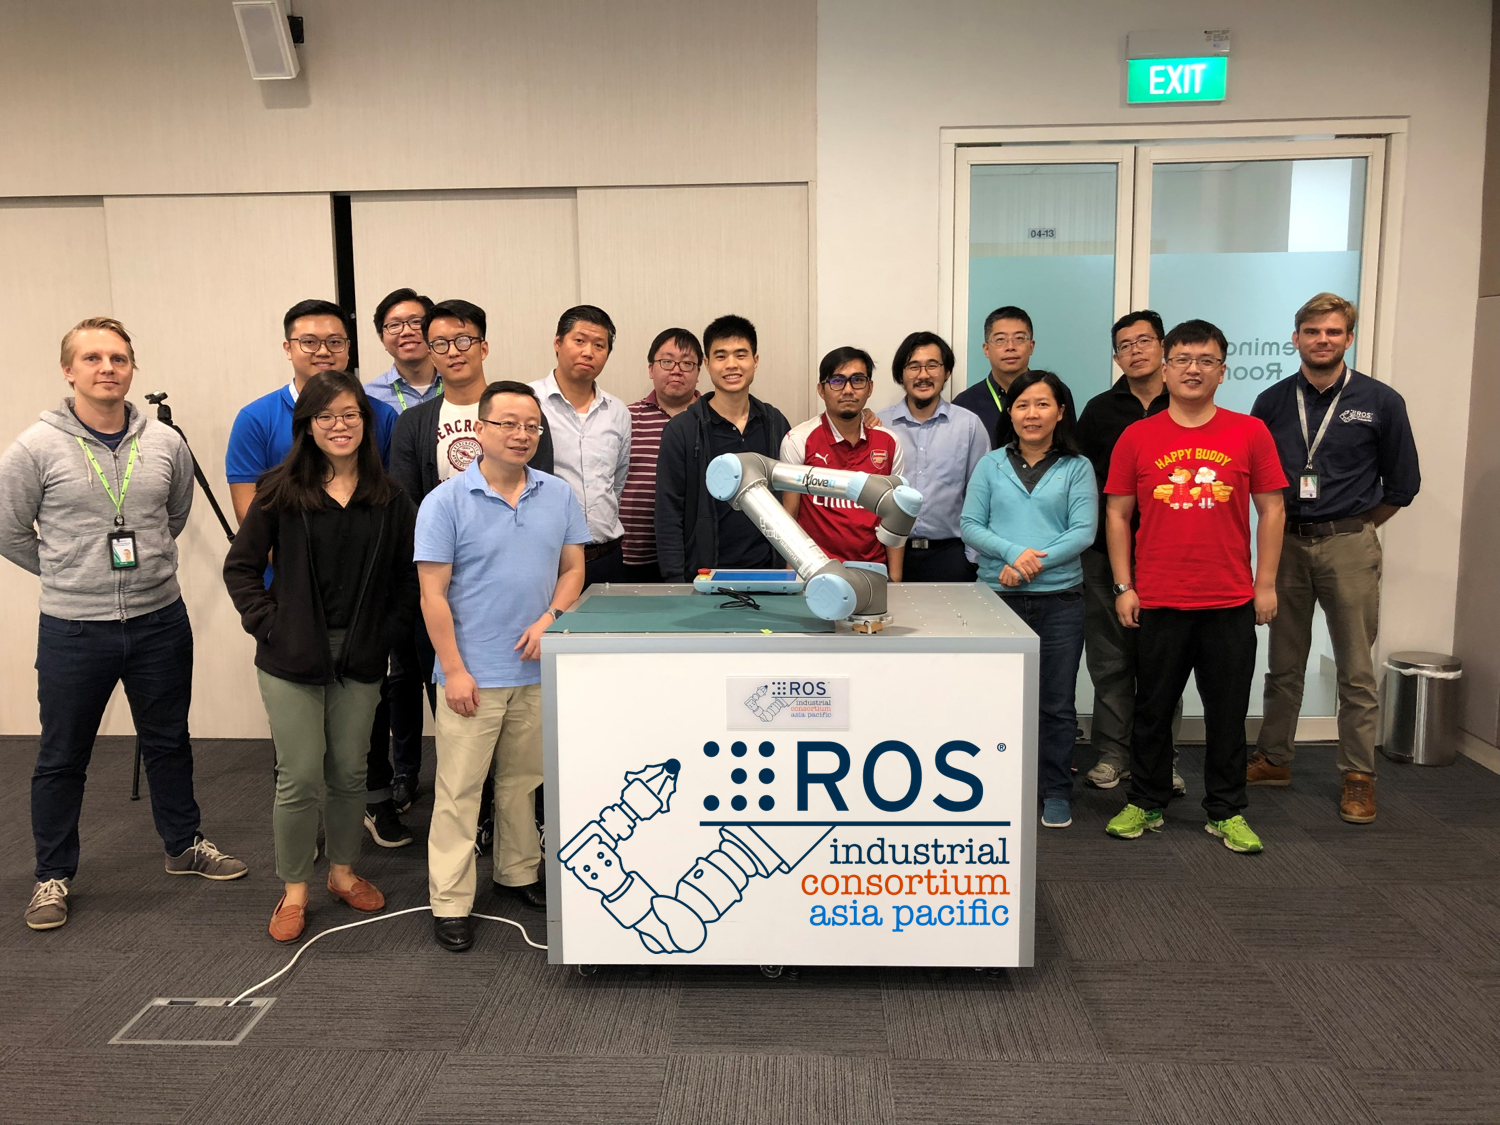 ROS-Industrial Consortium Asia Pacific December 2018 Training - Group Photo